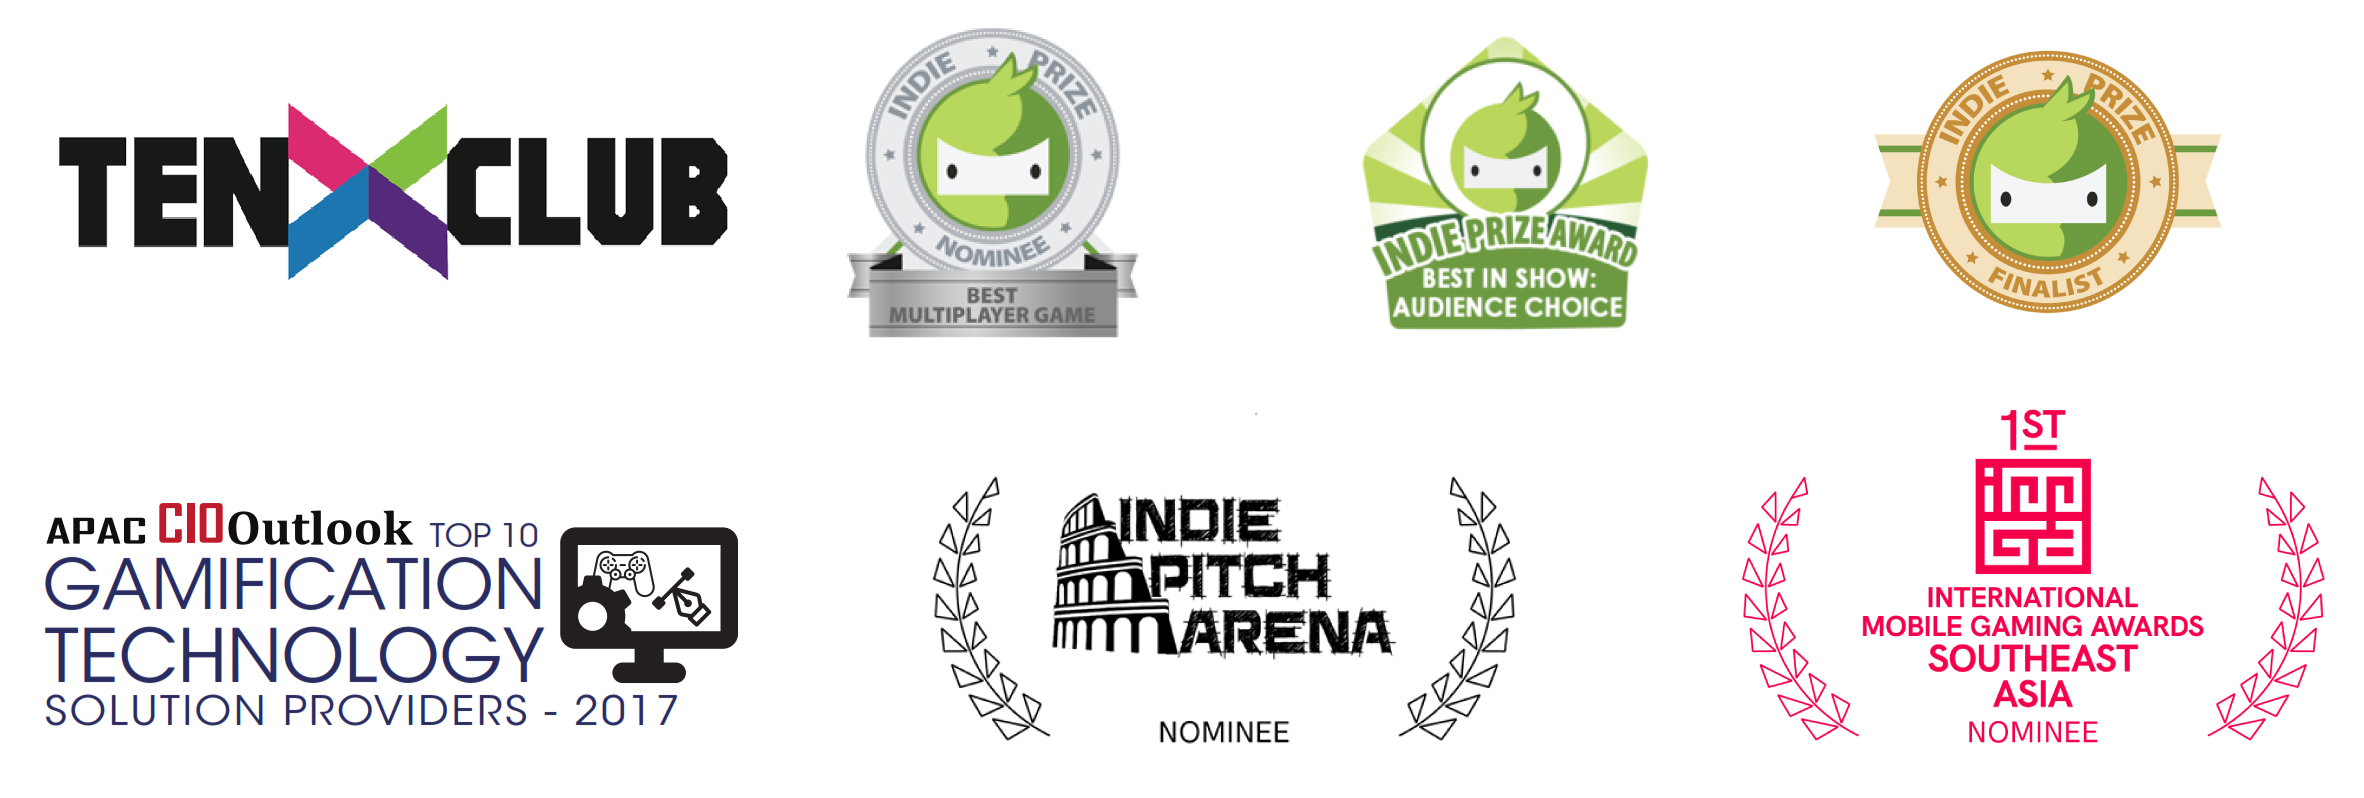 "Awards Logo ""TenxClub, Indie Prize, APAC CIO Outlook Top 10 Gamification technology provier, Indie Pitch Arena, 1st IMGA SEA Nominee"""